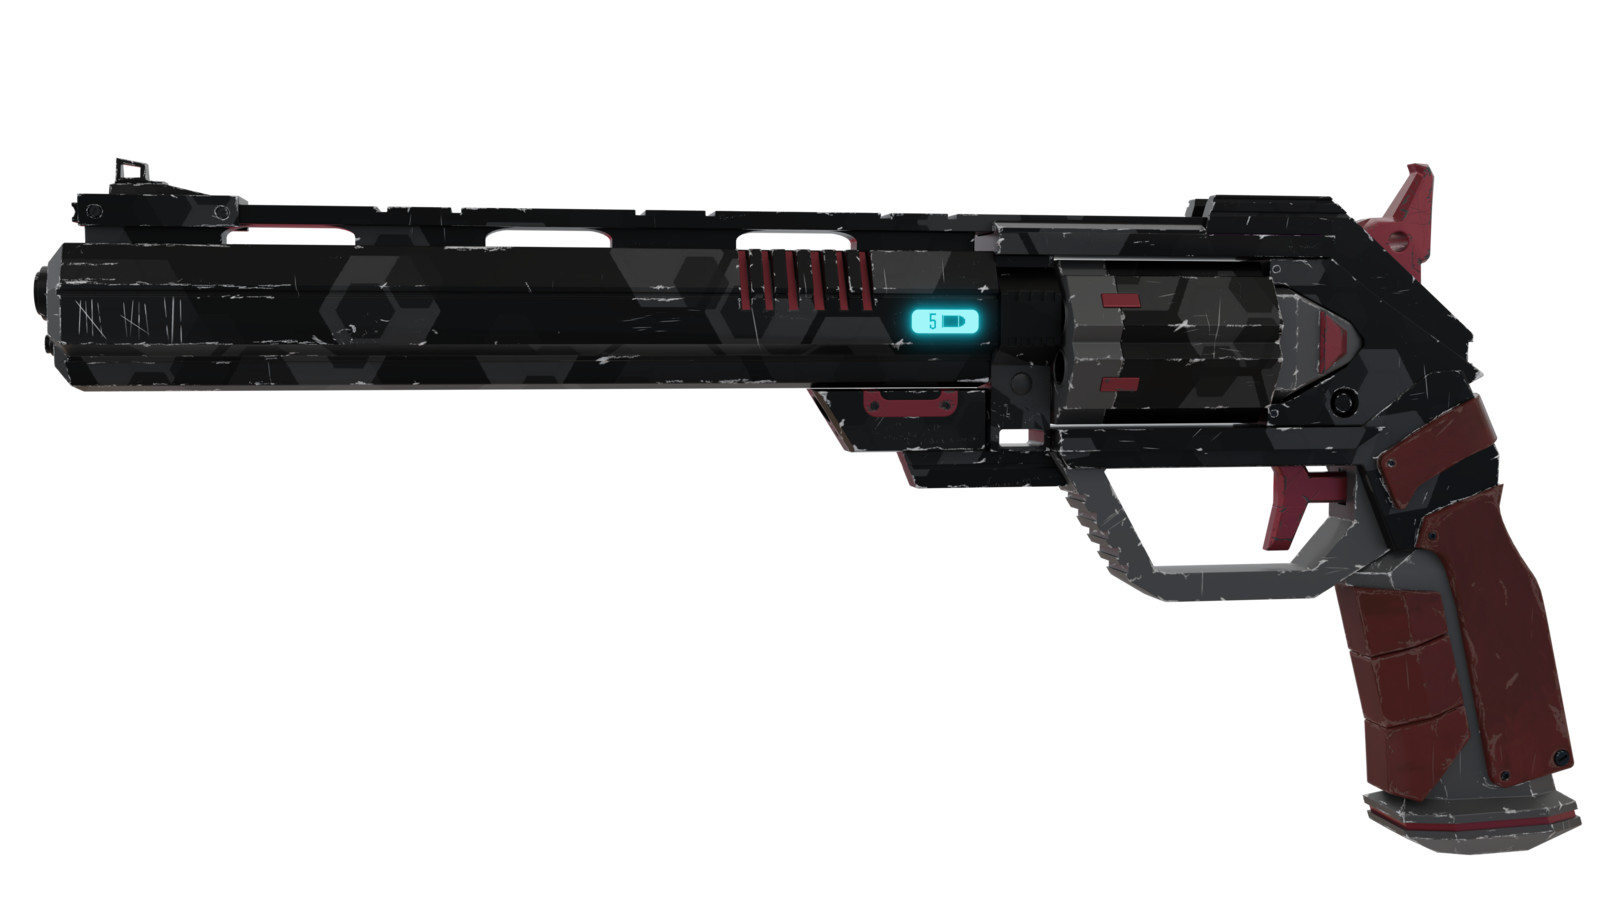 My take on the XCOM Conventional Pistol.